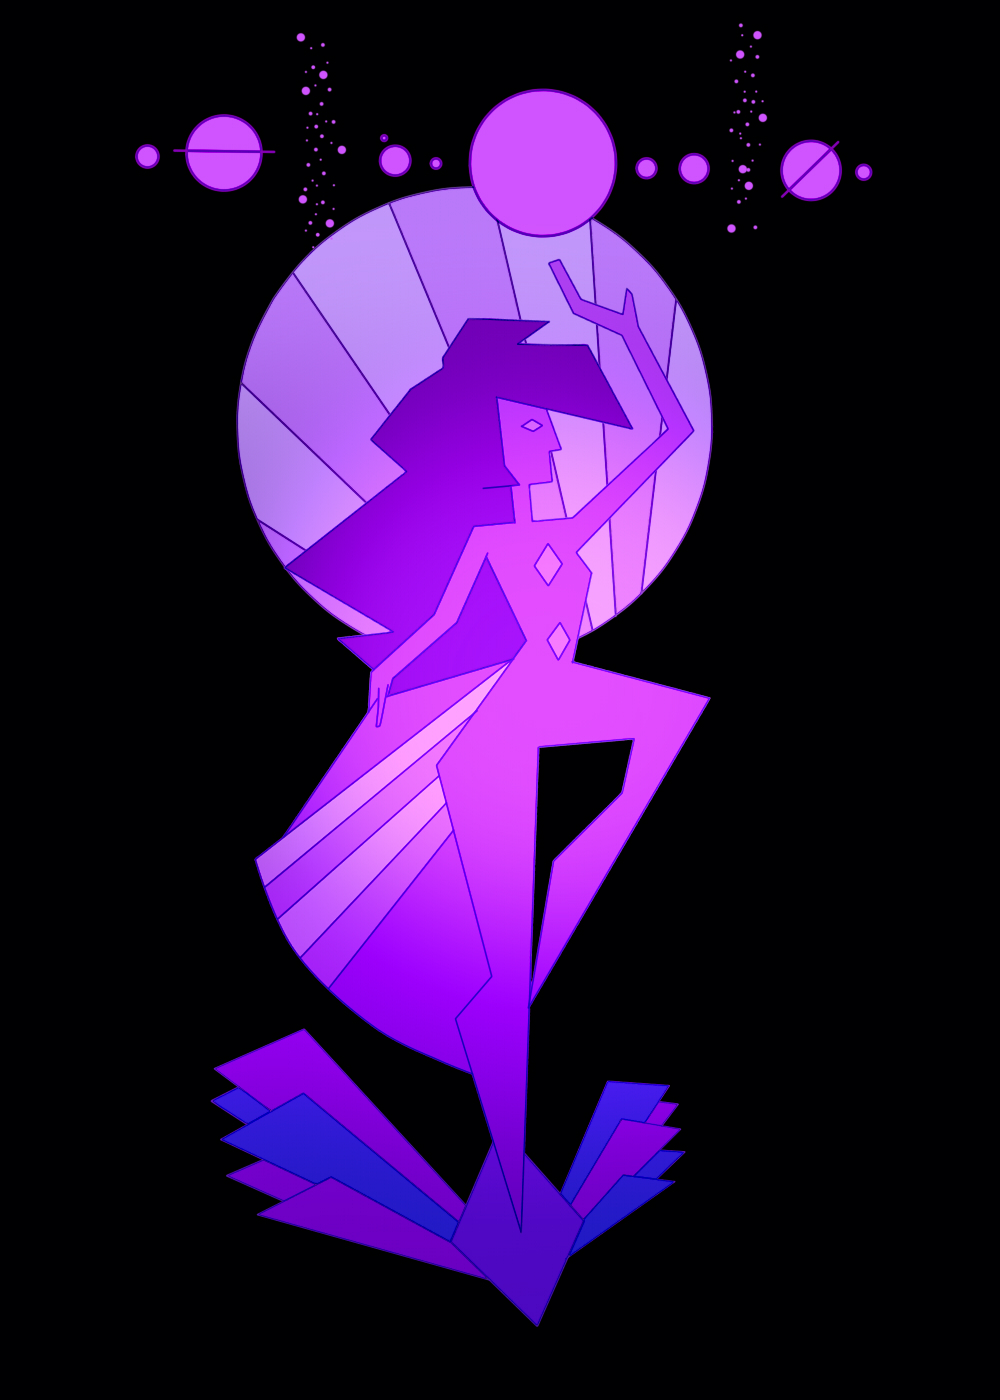 purple diamond on janethepegasus deviantart base art by